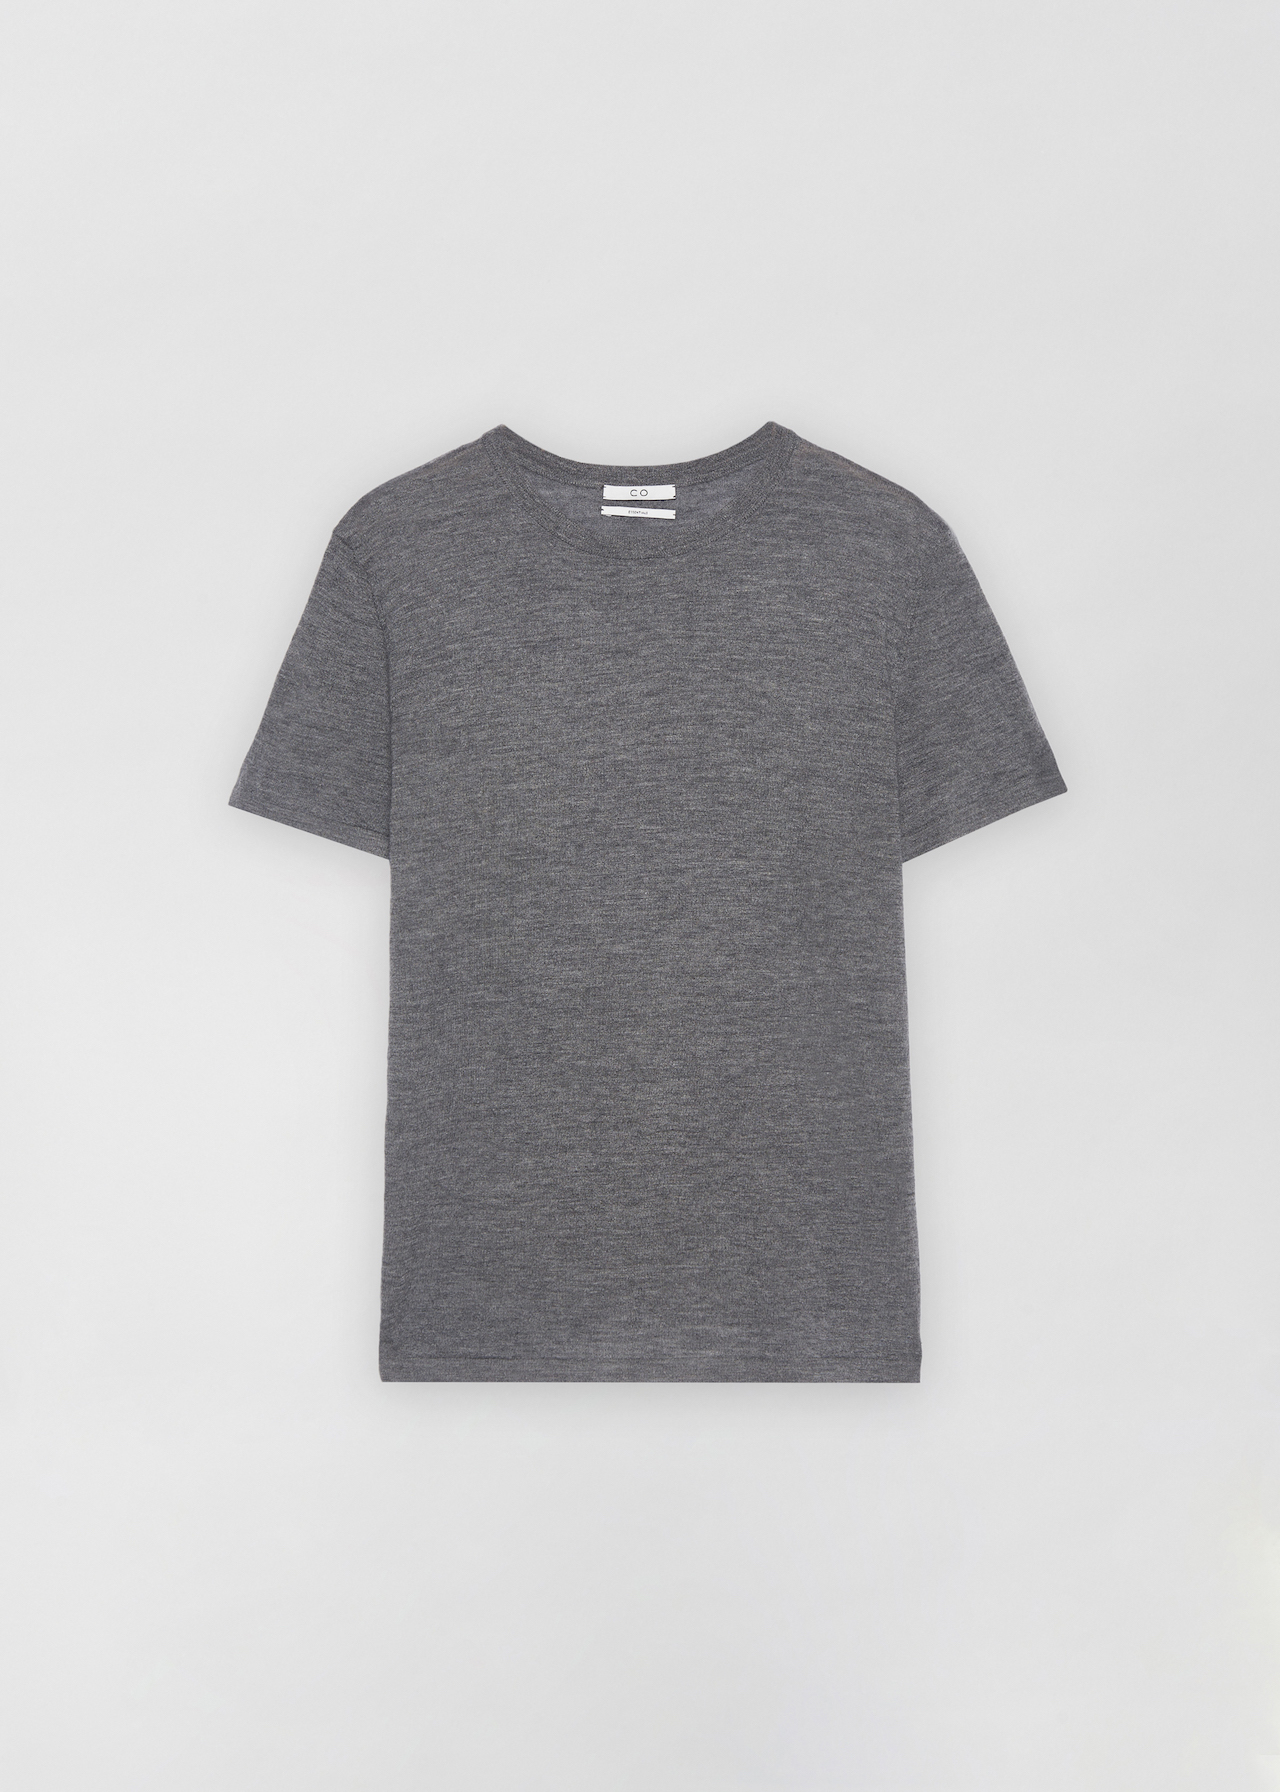 Cashmere T-Shirt - Navy in Grey by Co Collections